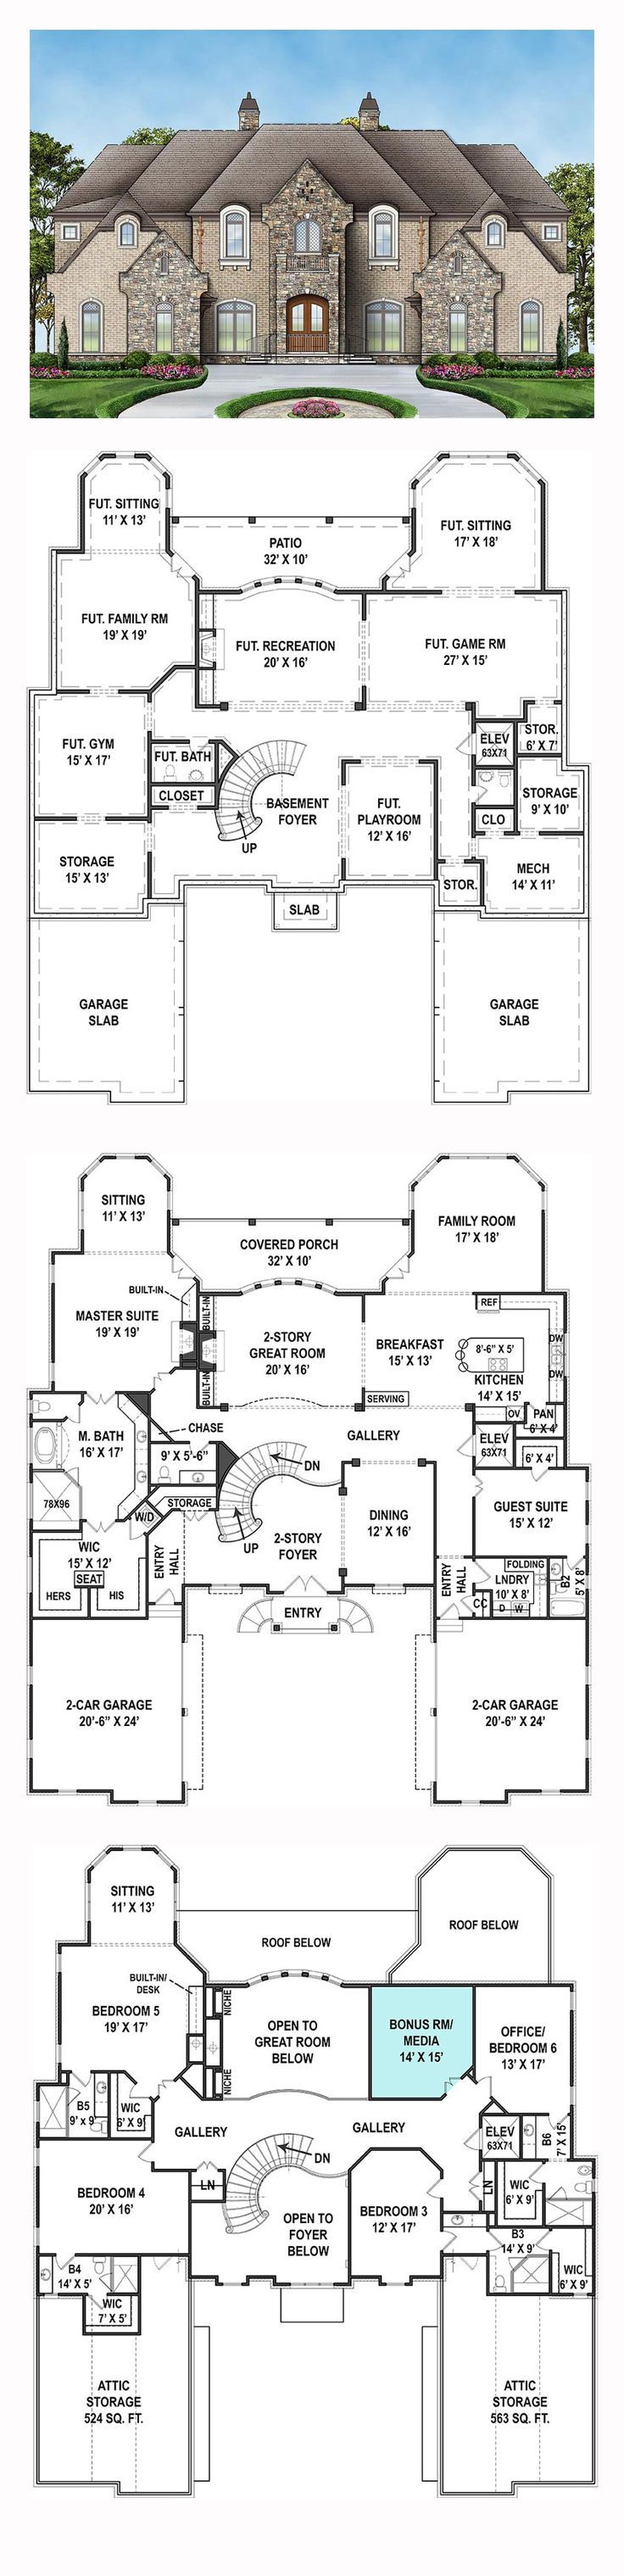 Best 25+ 6 bedroom house plans ideas on Pinterest | 6 bedroom ...